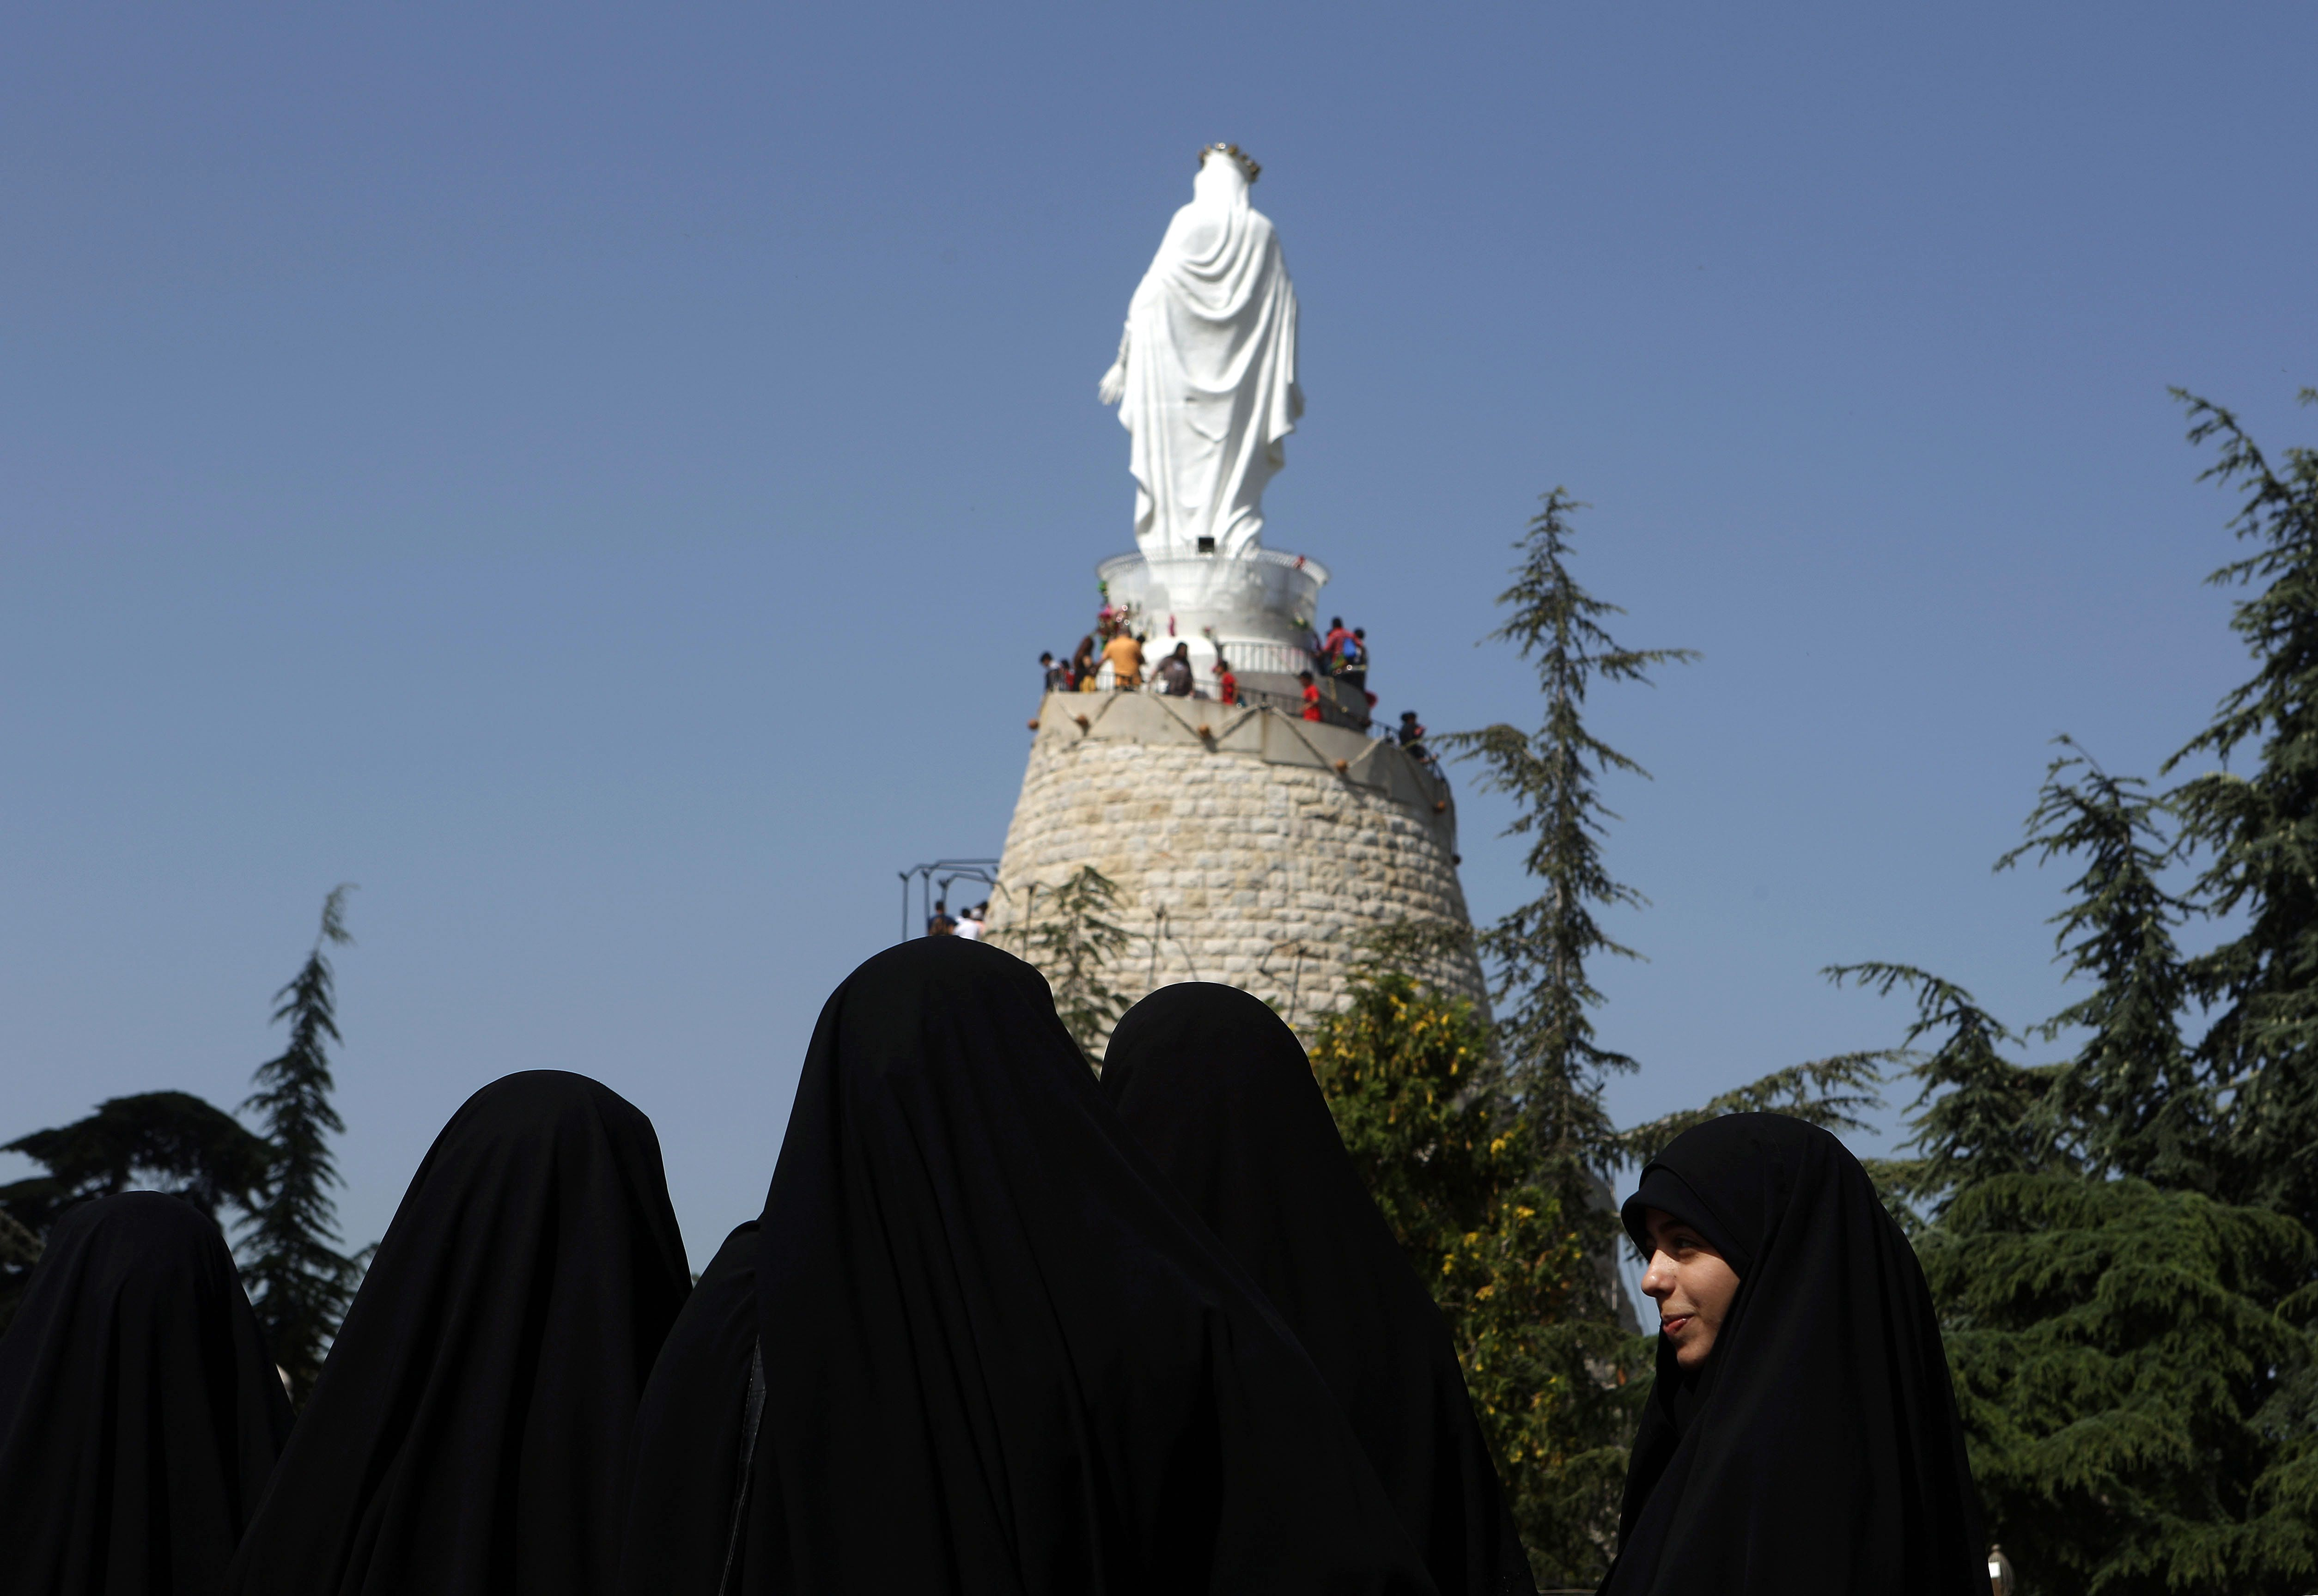 Lebanese Muslim Shiite women members of of Hezbollah's al-Mehdi movement visit a church at the shrine of Our Lady of Lebanon in the town of Harissa north east of the Lebanese capital Beirut, marking the start of the Holy Month of Virgin Mary, on May 1, 2016. Virgin Mary is considered one of the most righteous and greatest women in Islam and is venerated by both Islam and Christianity. / AFP / PATRICK BAZ        (Photo credit should read PATRICK BAZ/AFP/Getty Images)